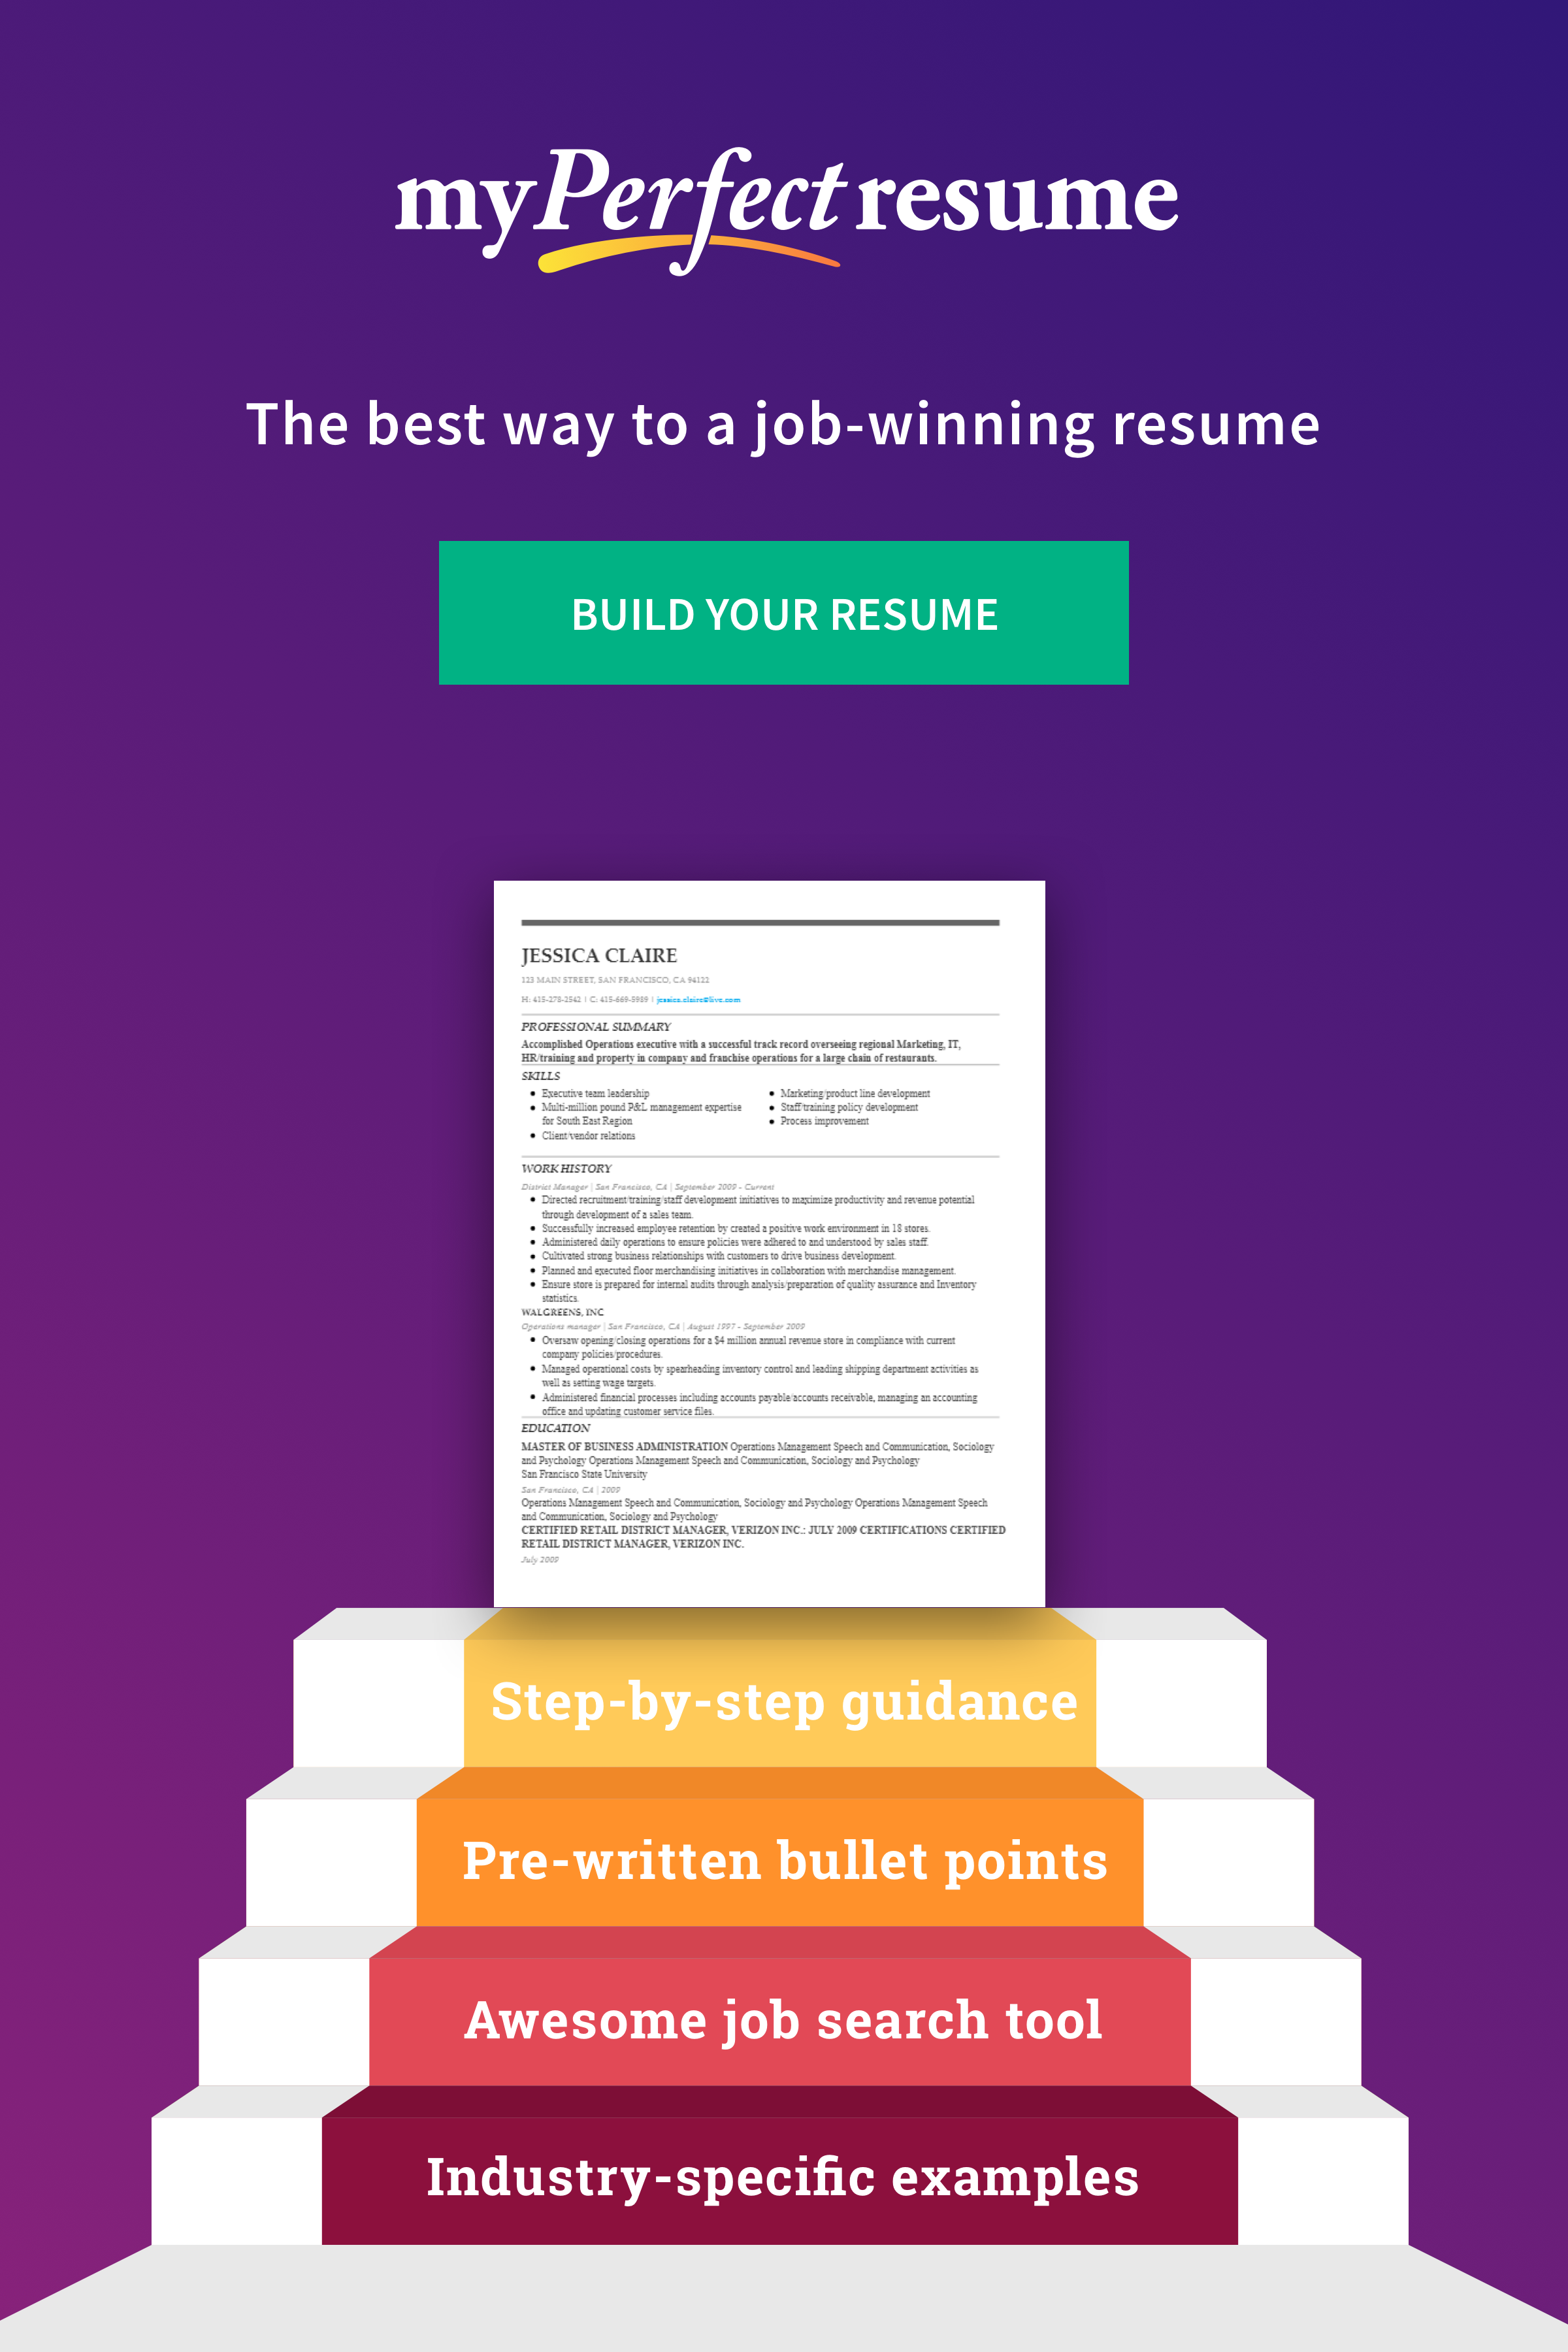 Step By Step Resume My Perfect Resume Guides You Stepstep To A Jobwinning Resume .